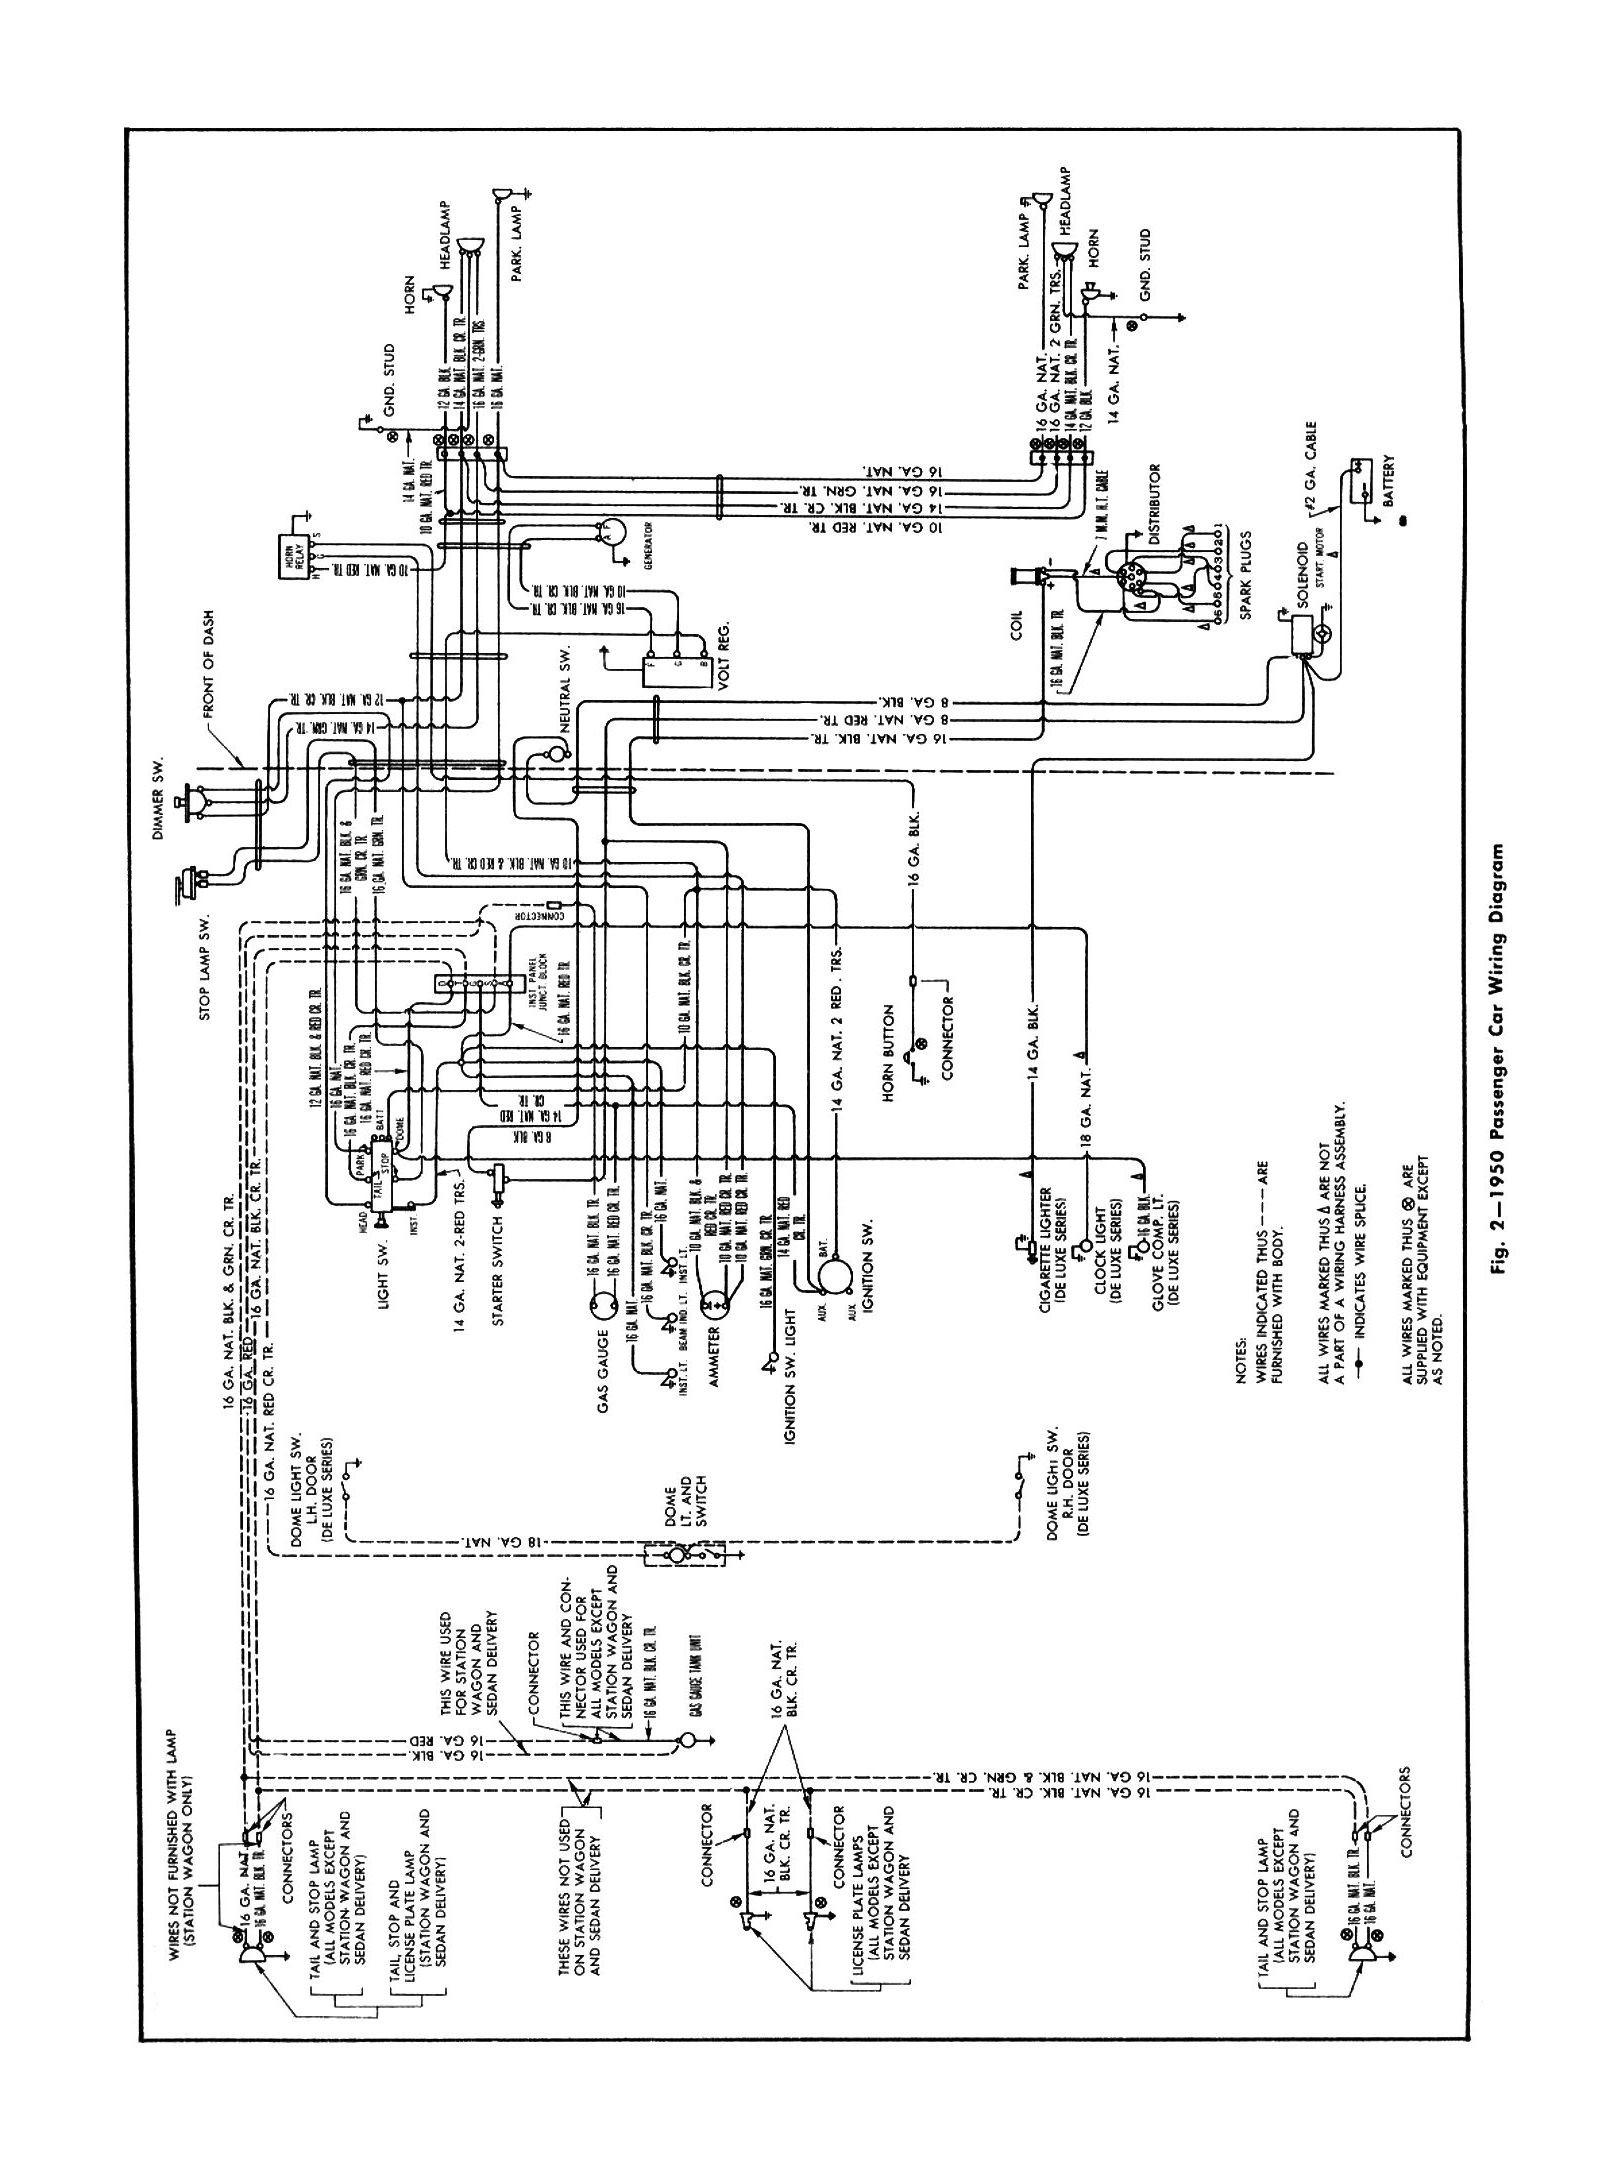 1951 mercury wiring diagram detailed schematics diagram rh antonartgallery  com Chevy 350 Starter Wiring Diagram 1939